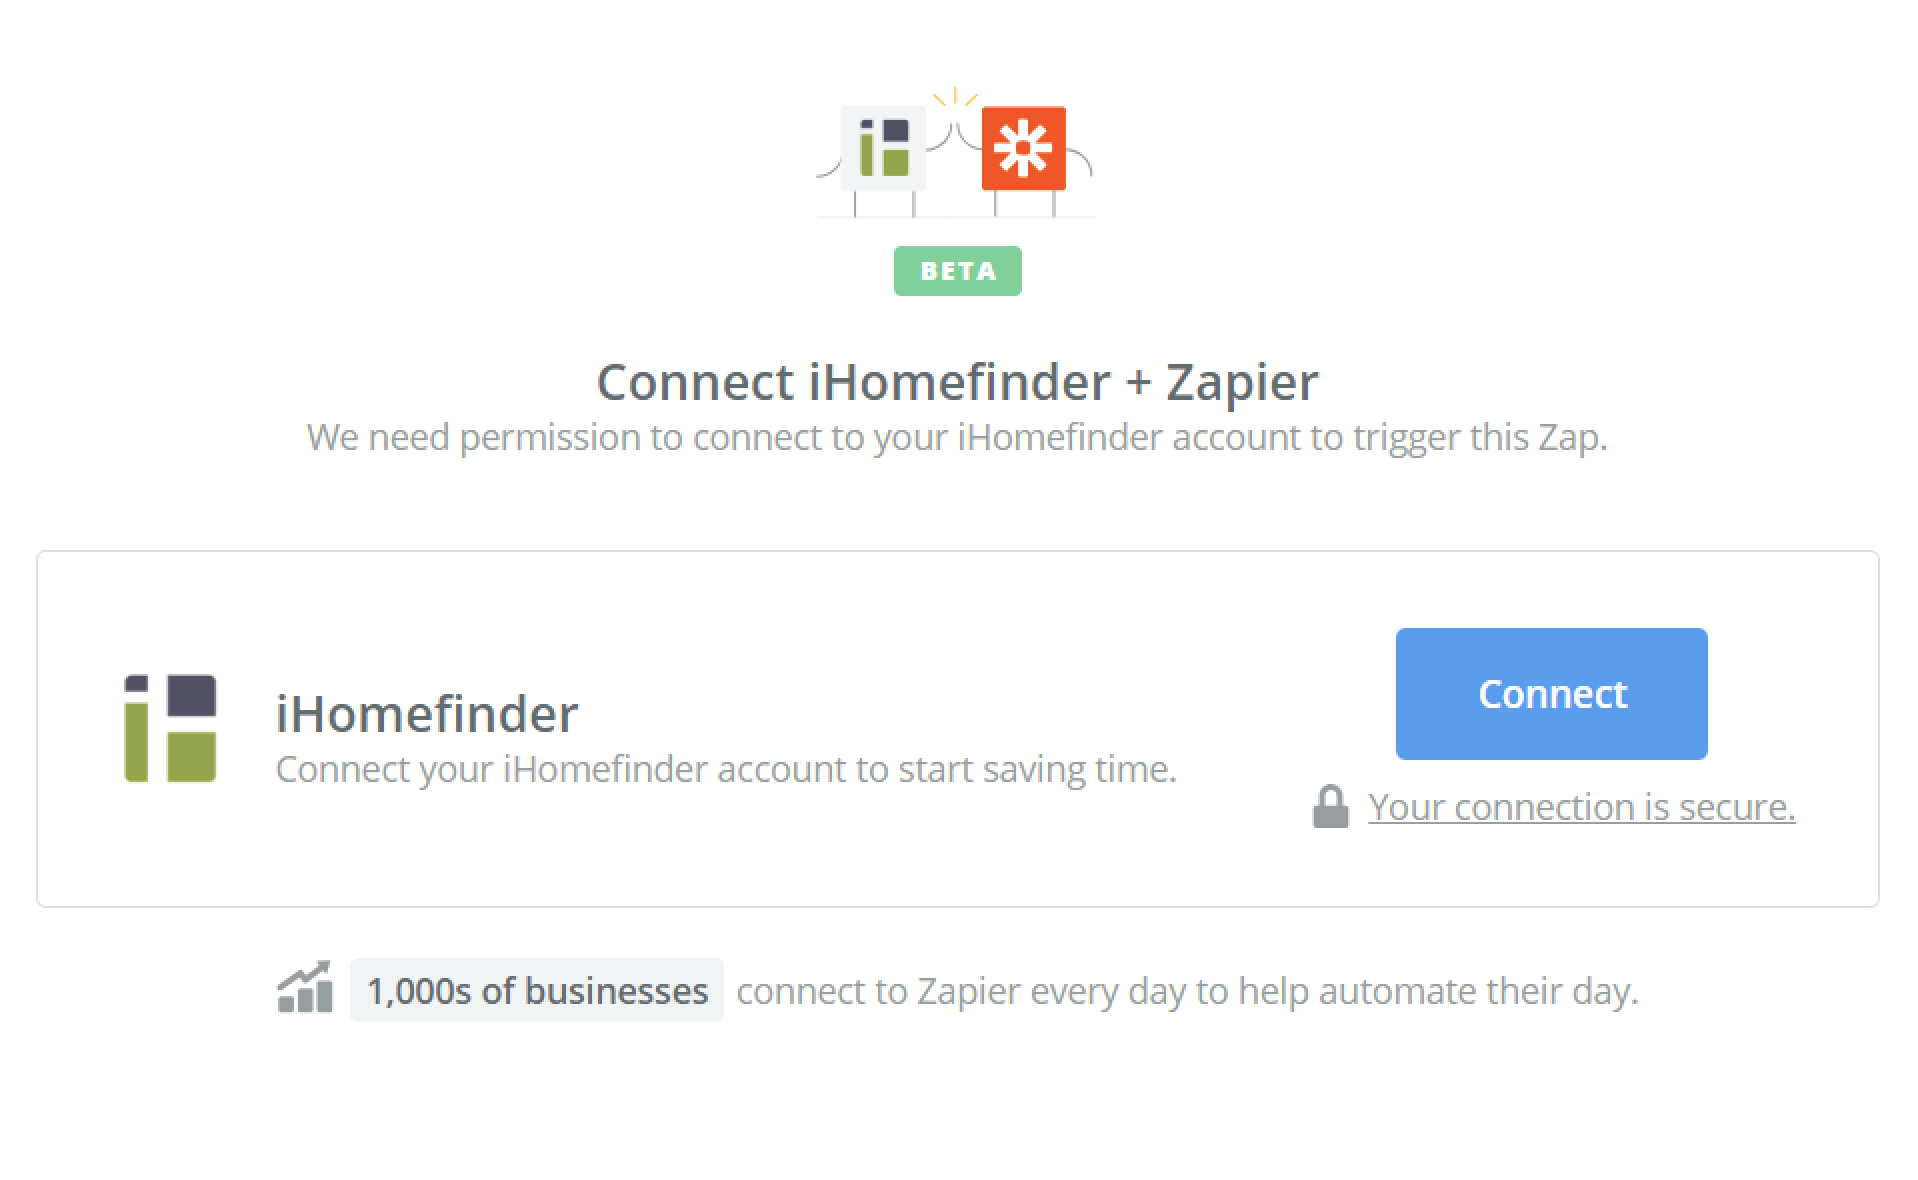 Click to connect iHomefinder